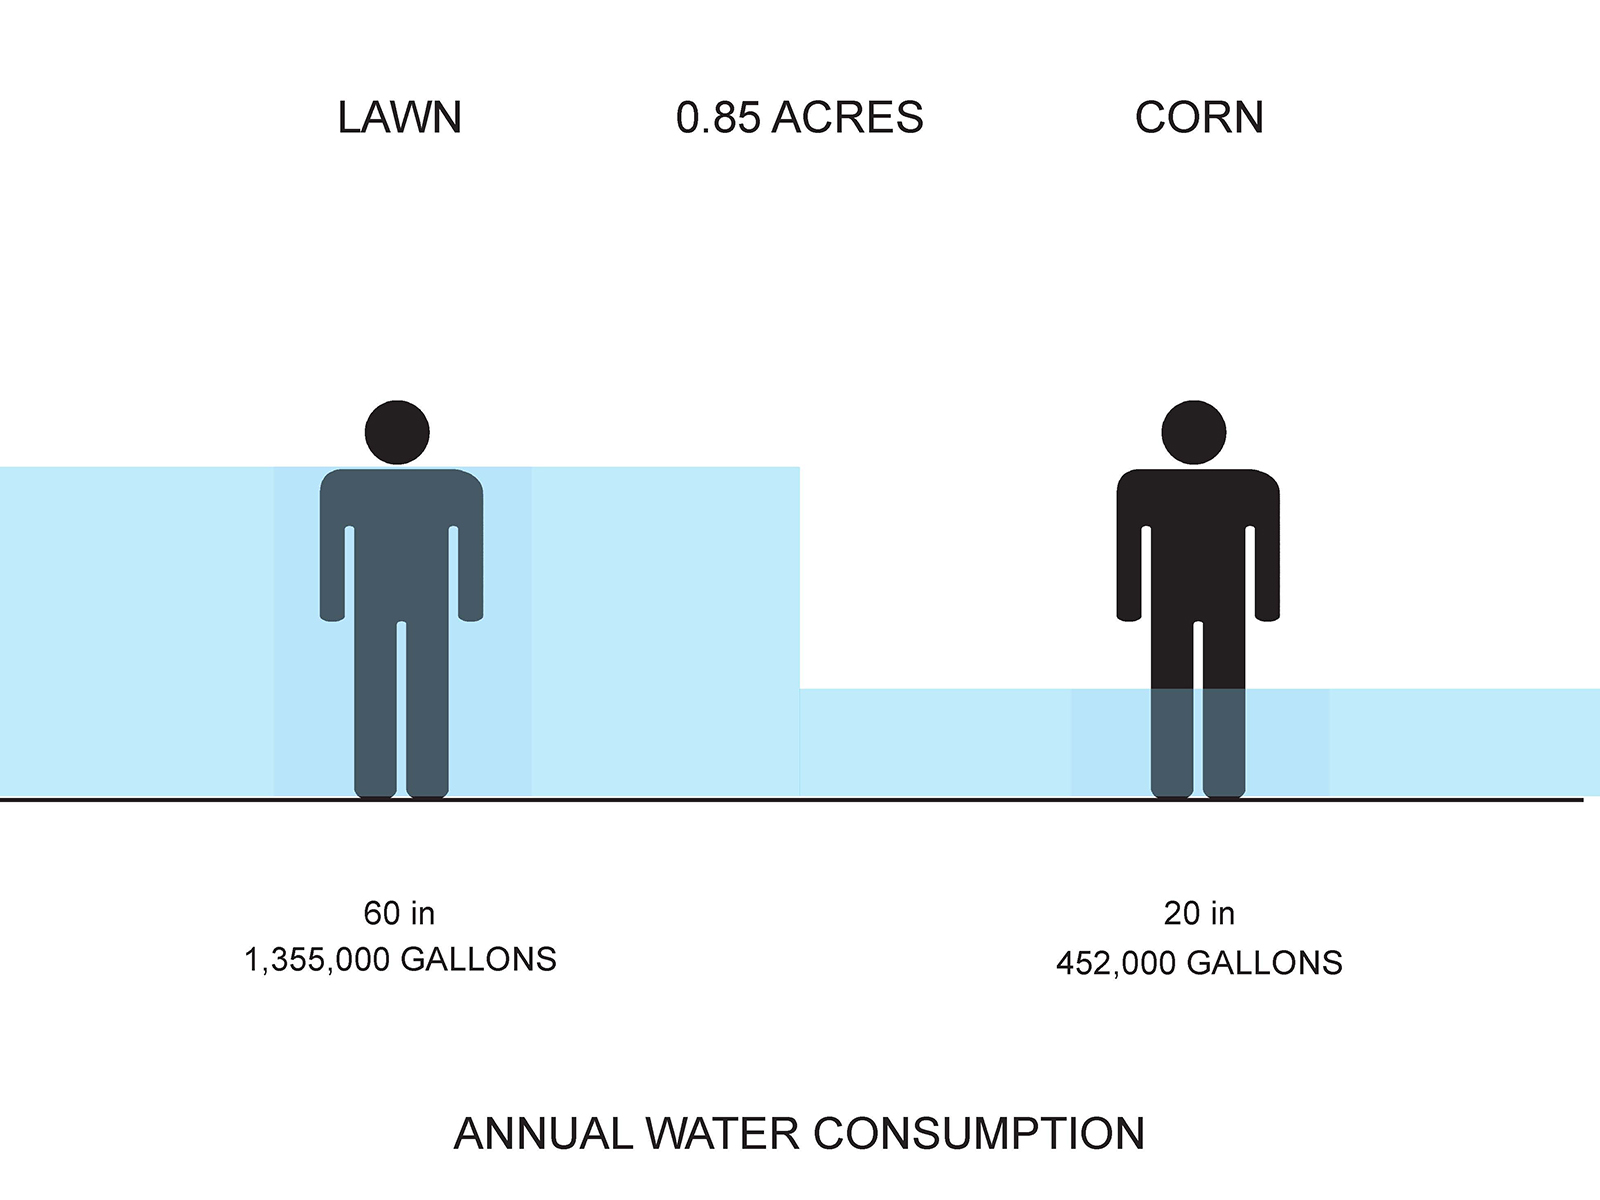 Annual water consumption of each.